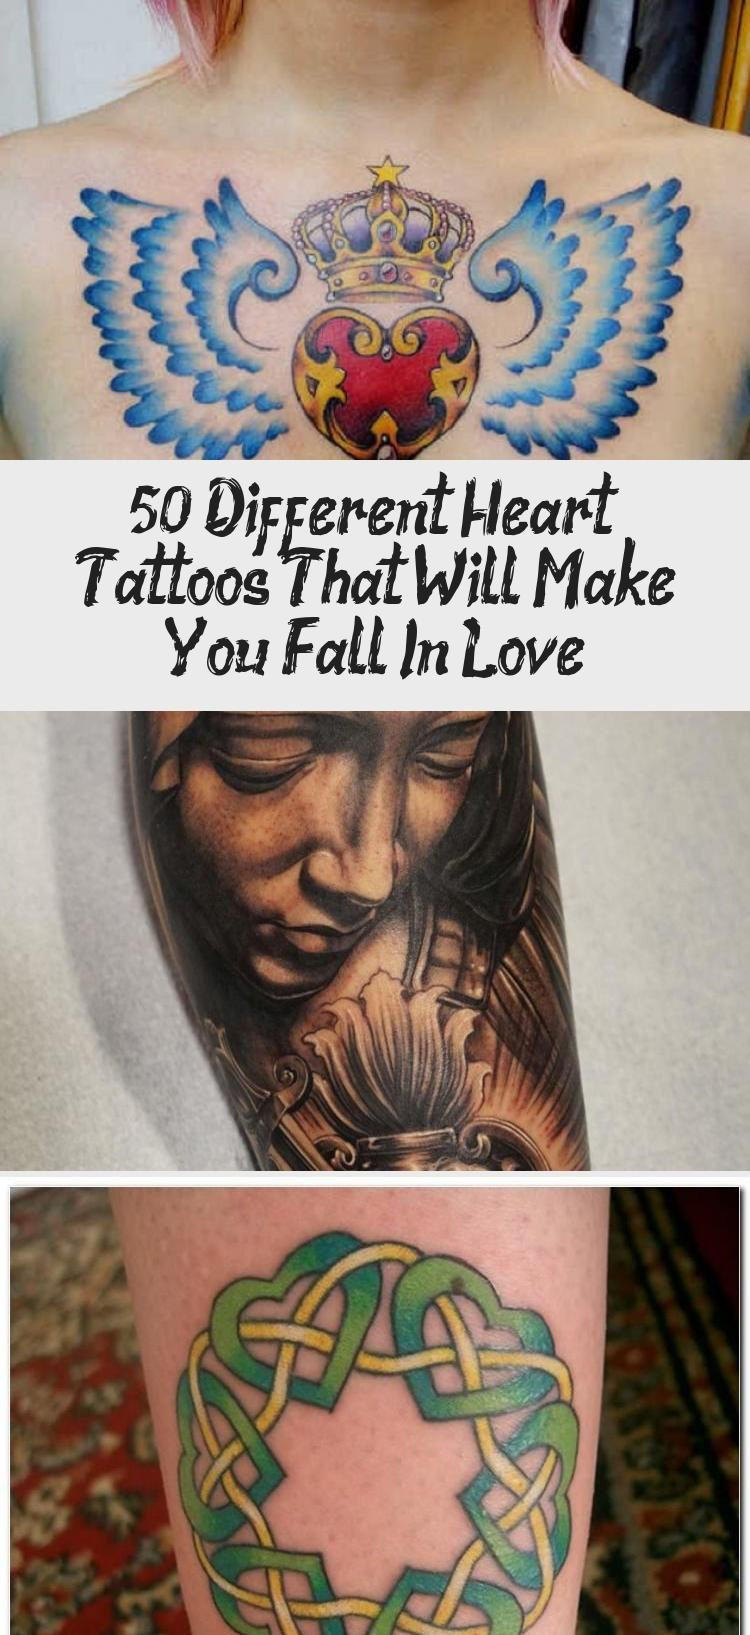 50+ Different Heart Tattoos That Will Make You Fall In